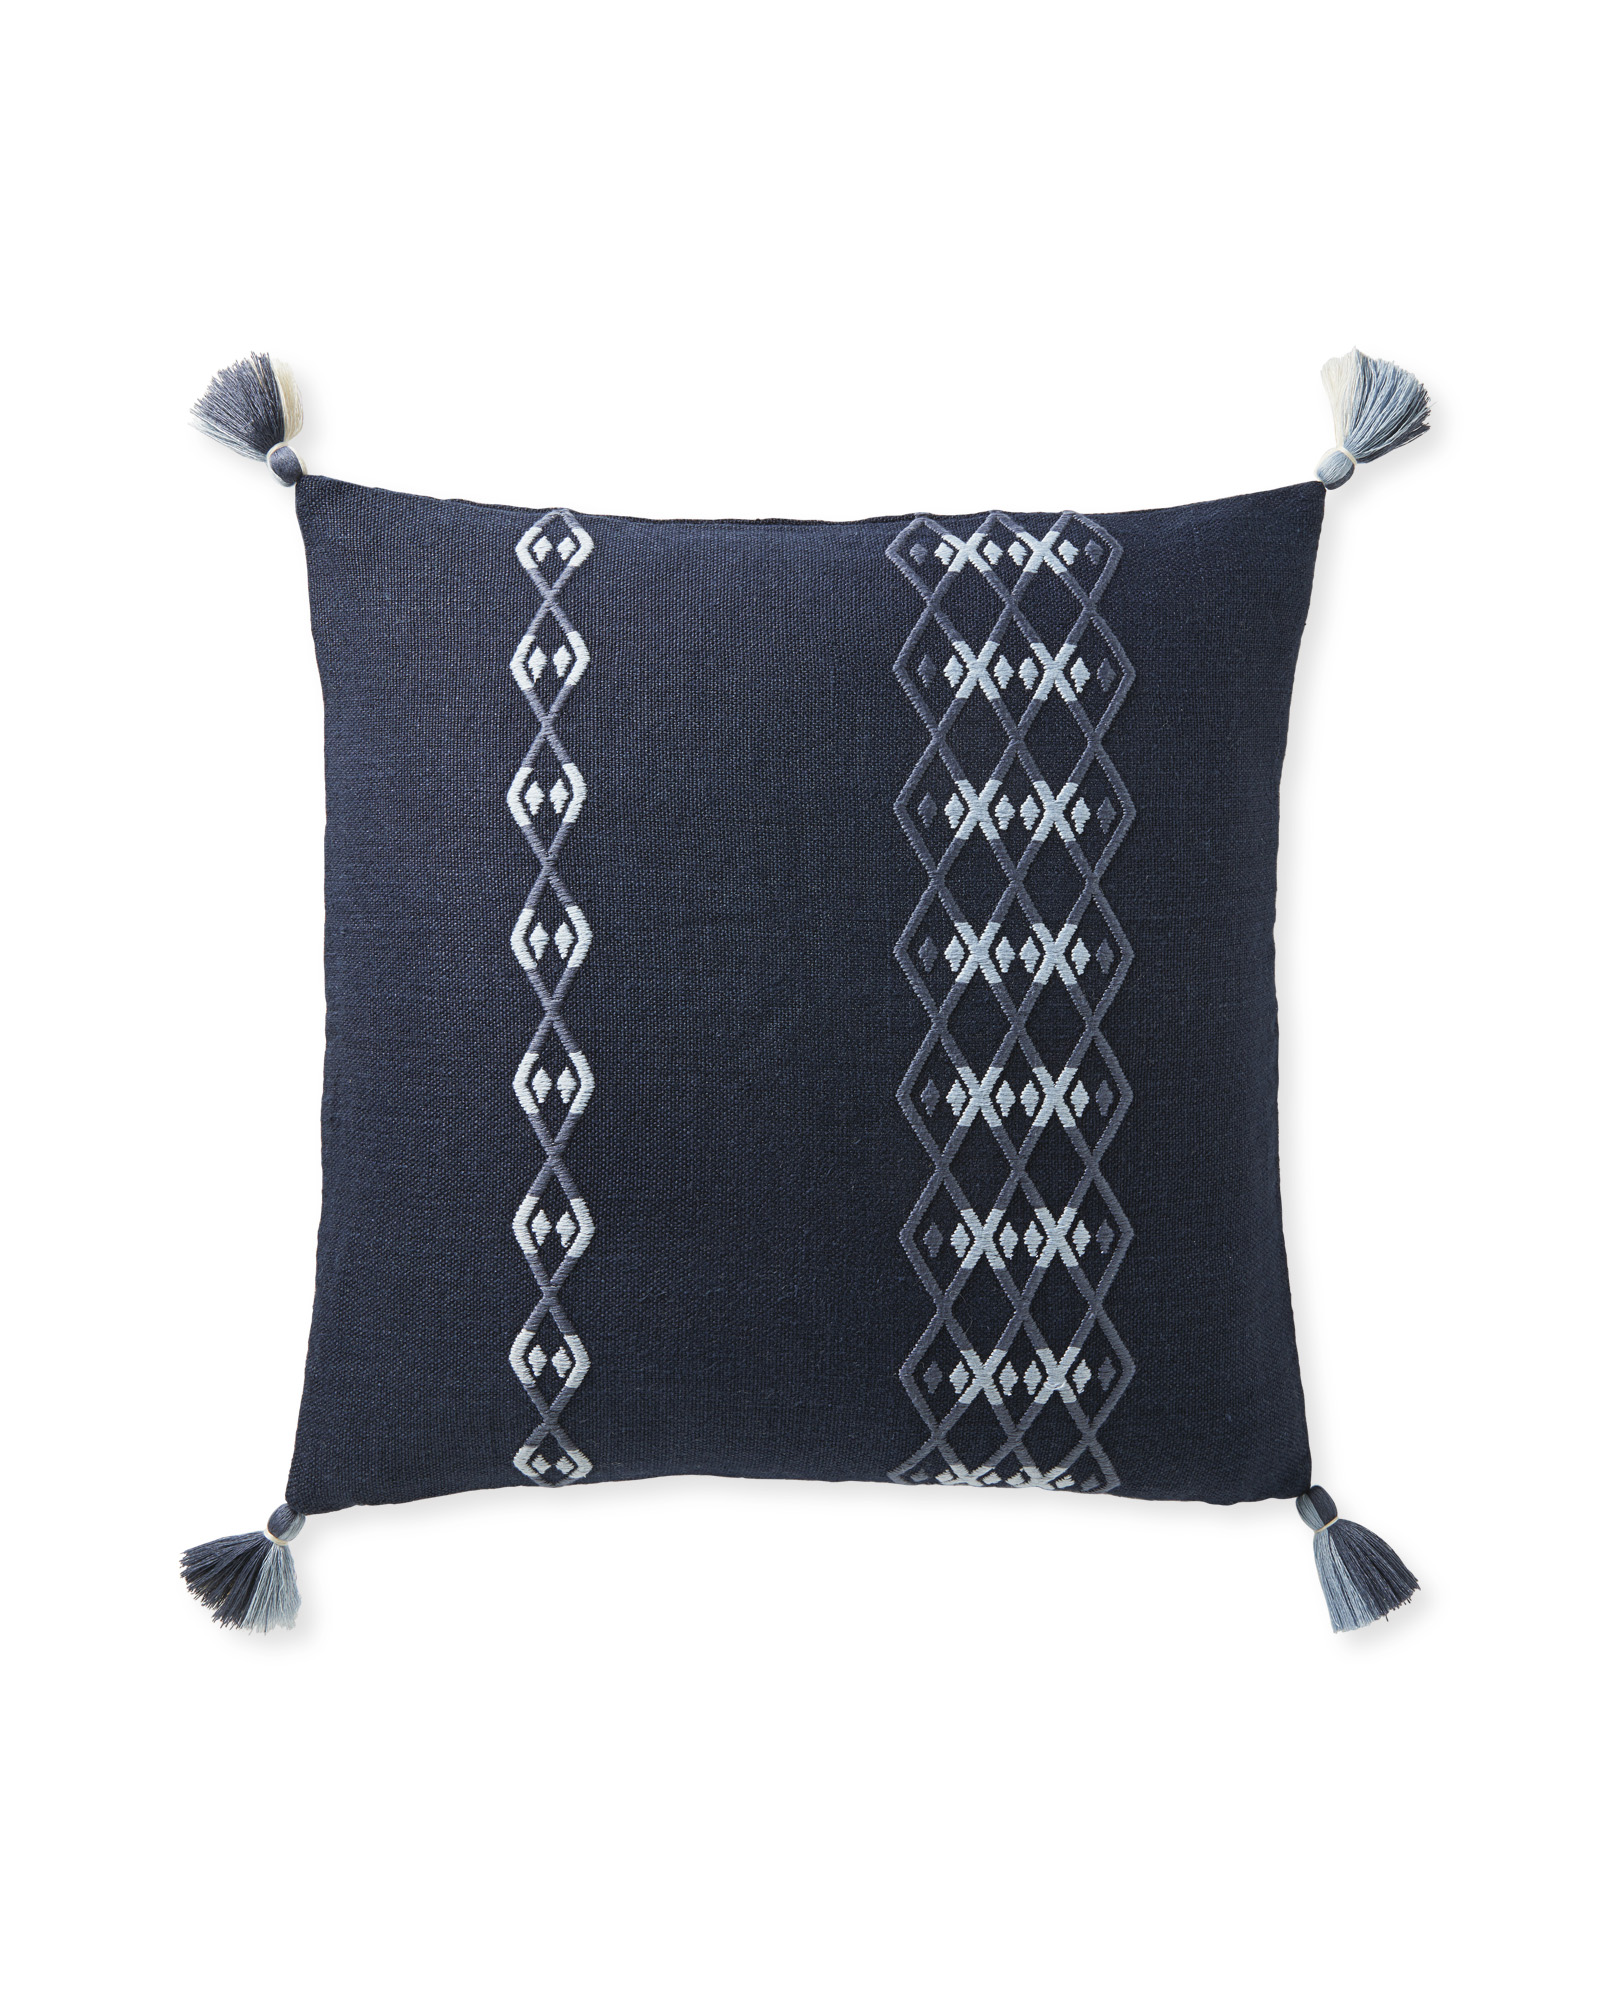 Falmouth Pillow Cover, Navy/Vintage Indigo